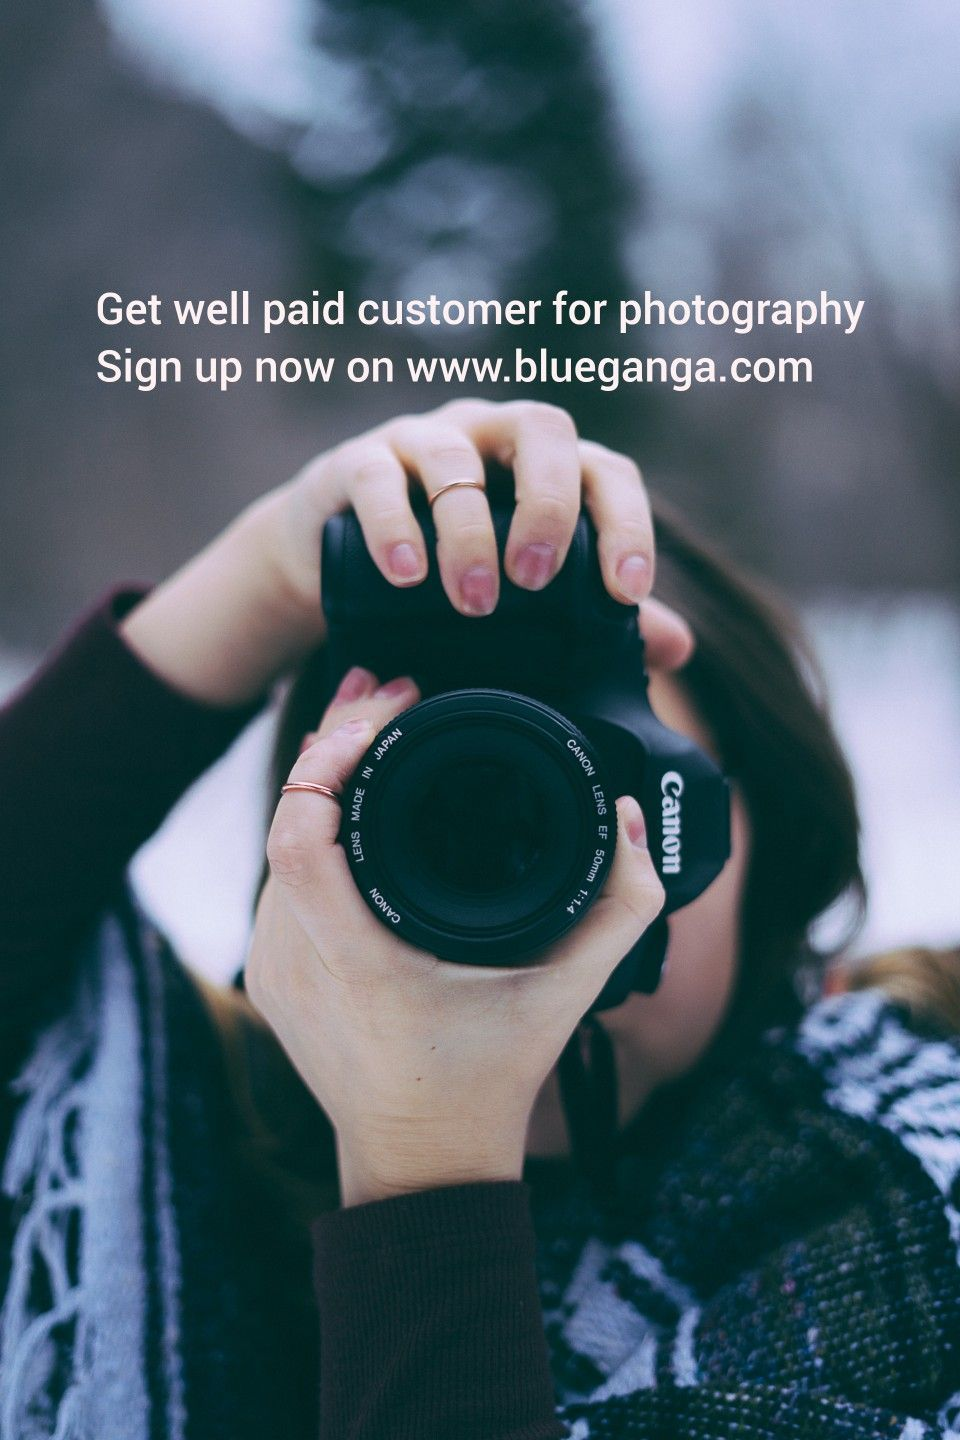 Find your best photographer on www.blueganga.com  #Find #photographer #wwwbluegangacom